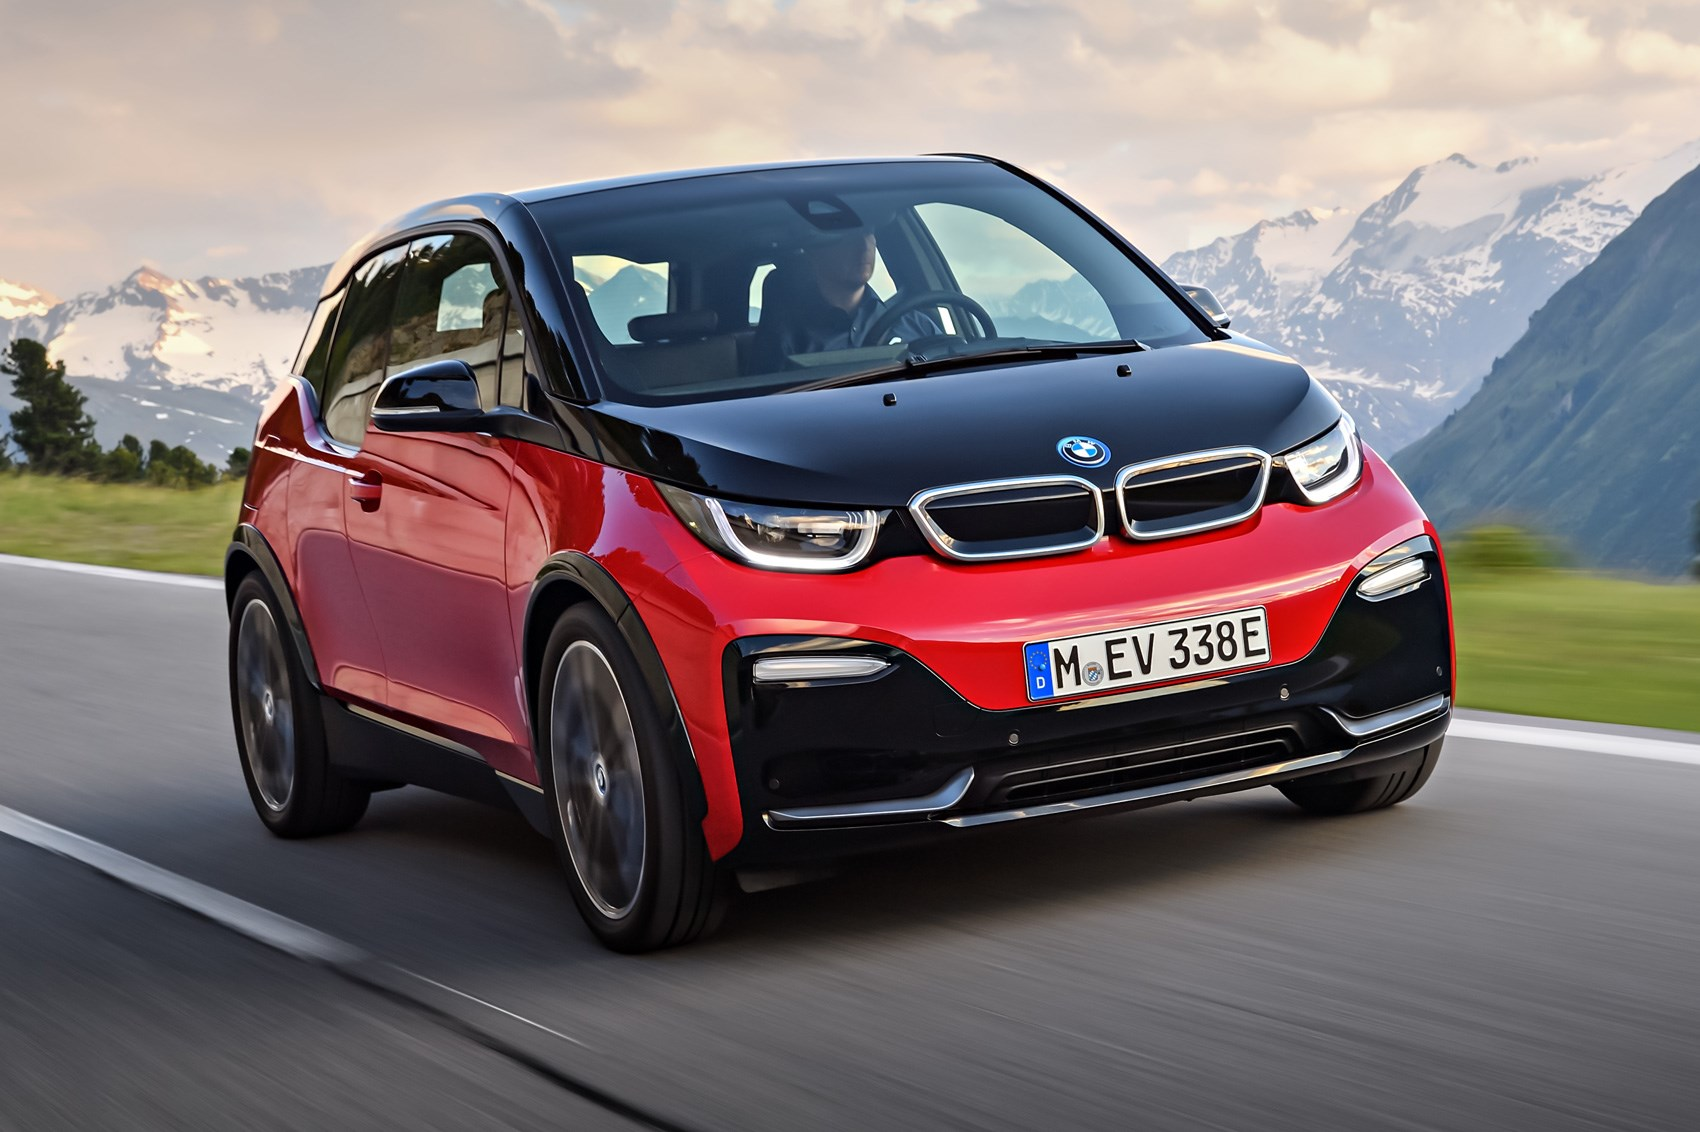 bmw i3 and i3 s electric car gets power boost for 2018 car magazine. Black Bedroom Furniture Sets. Home Design Ideas